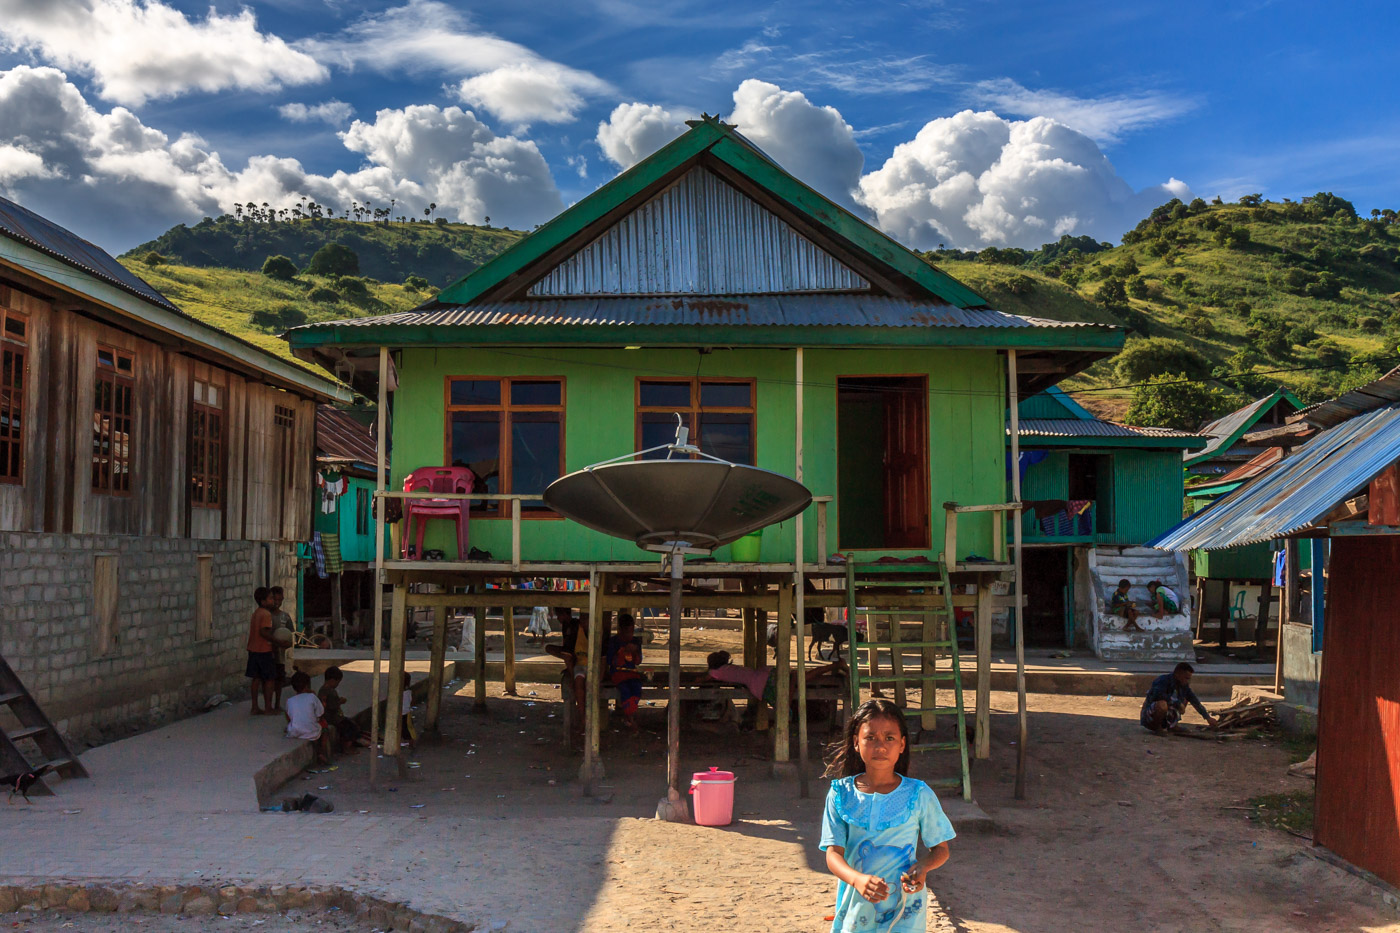 Girl and house in Komodo Village.